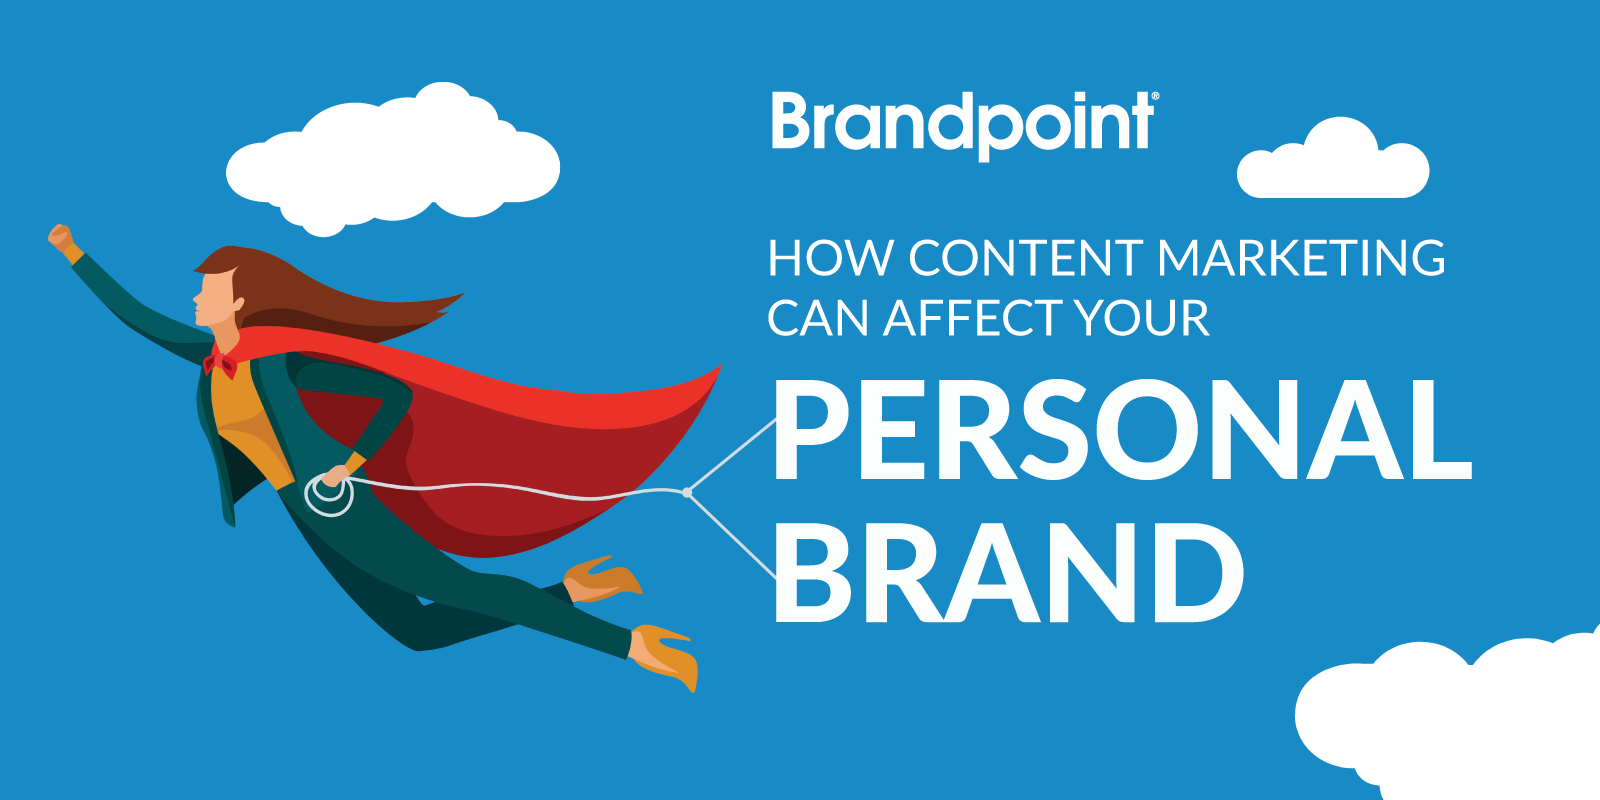 Content Marketing Affects Your Personal Brand